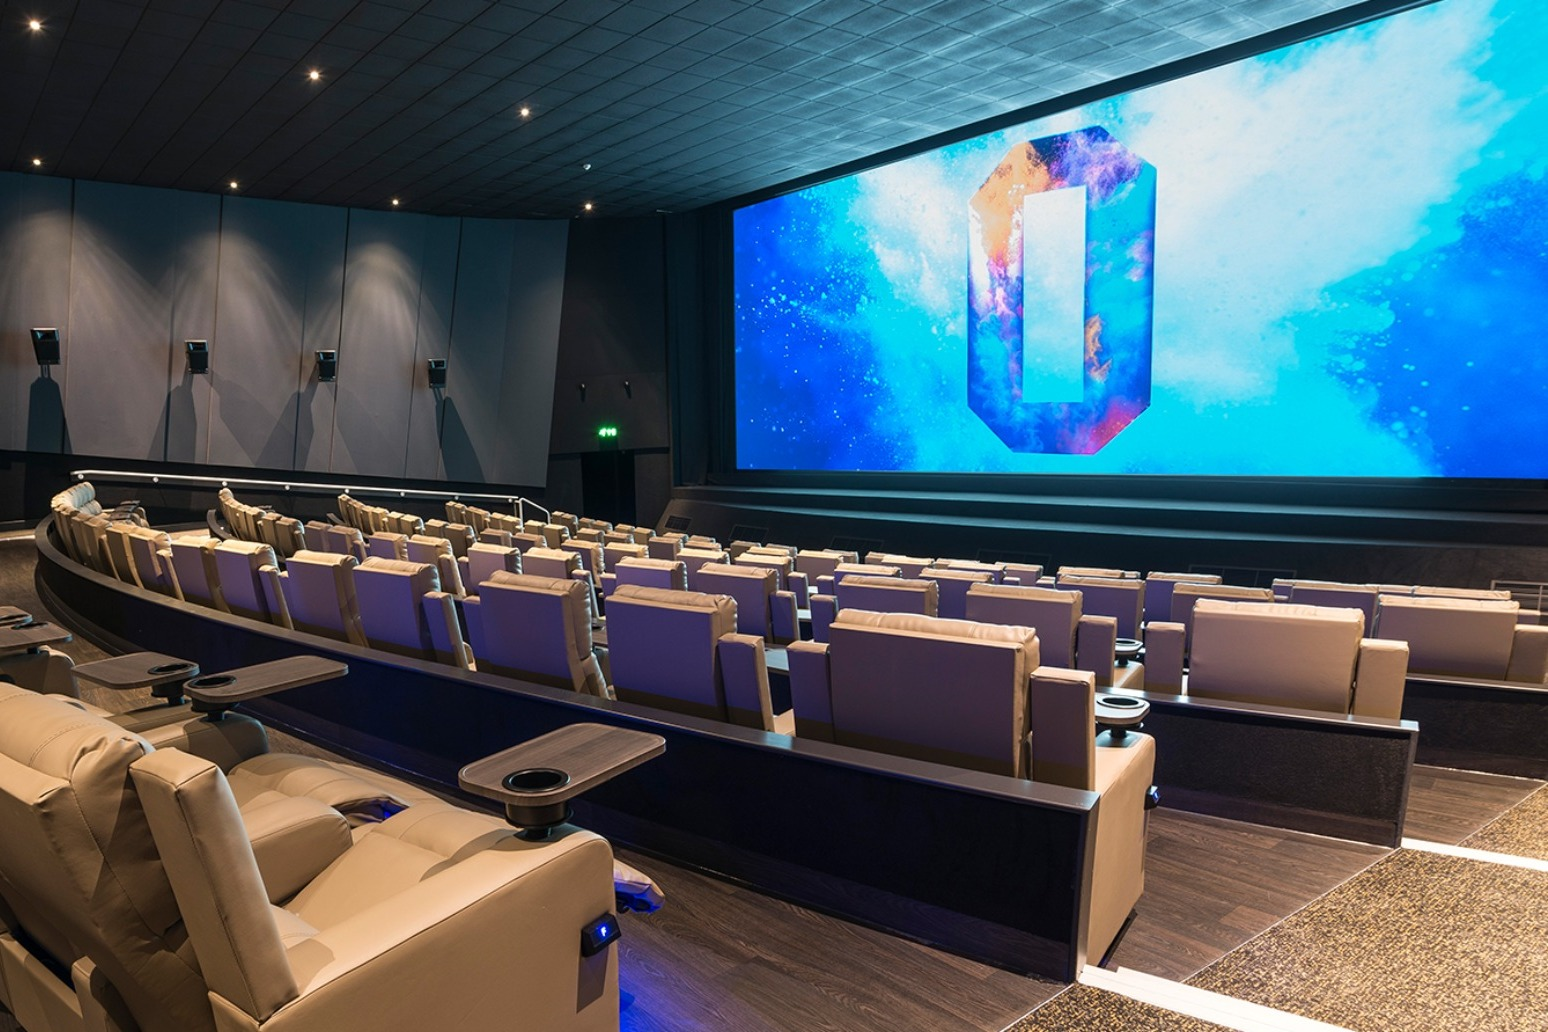 Odeon confirms plans to reopen on May 17